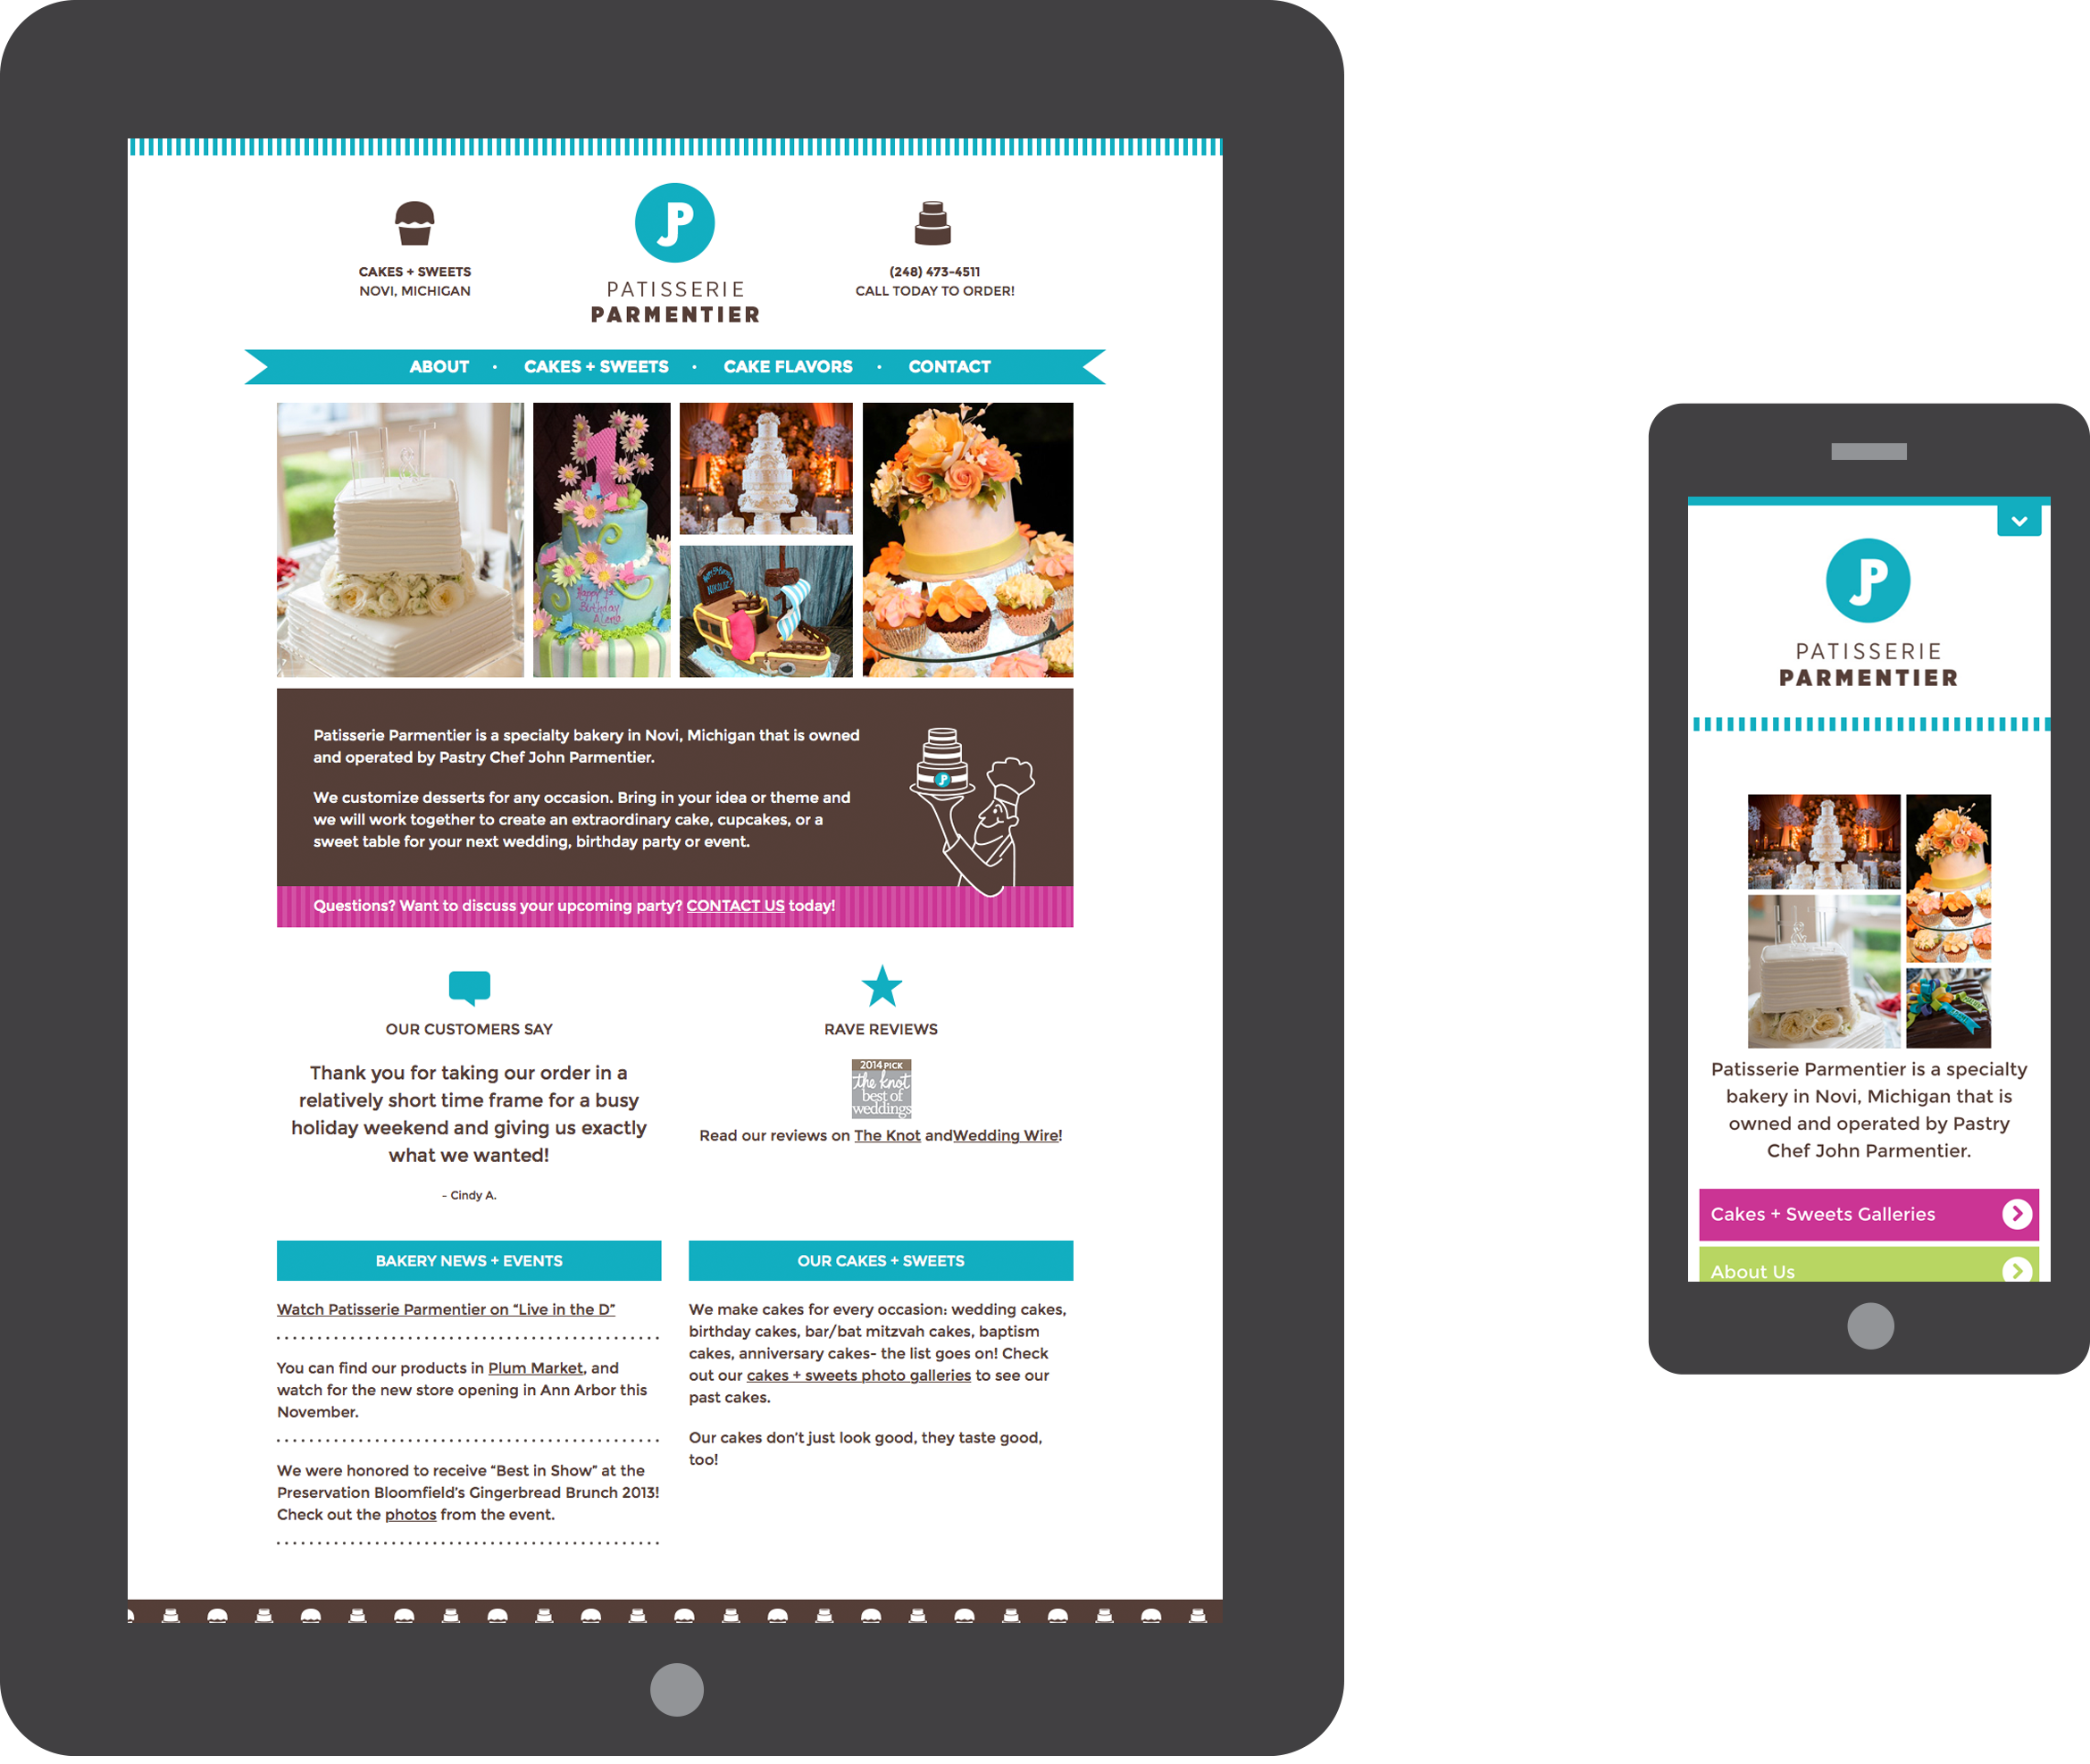 Patisserie Parmentier mobile websites